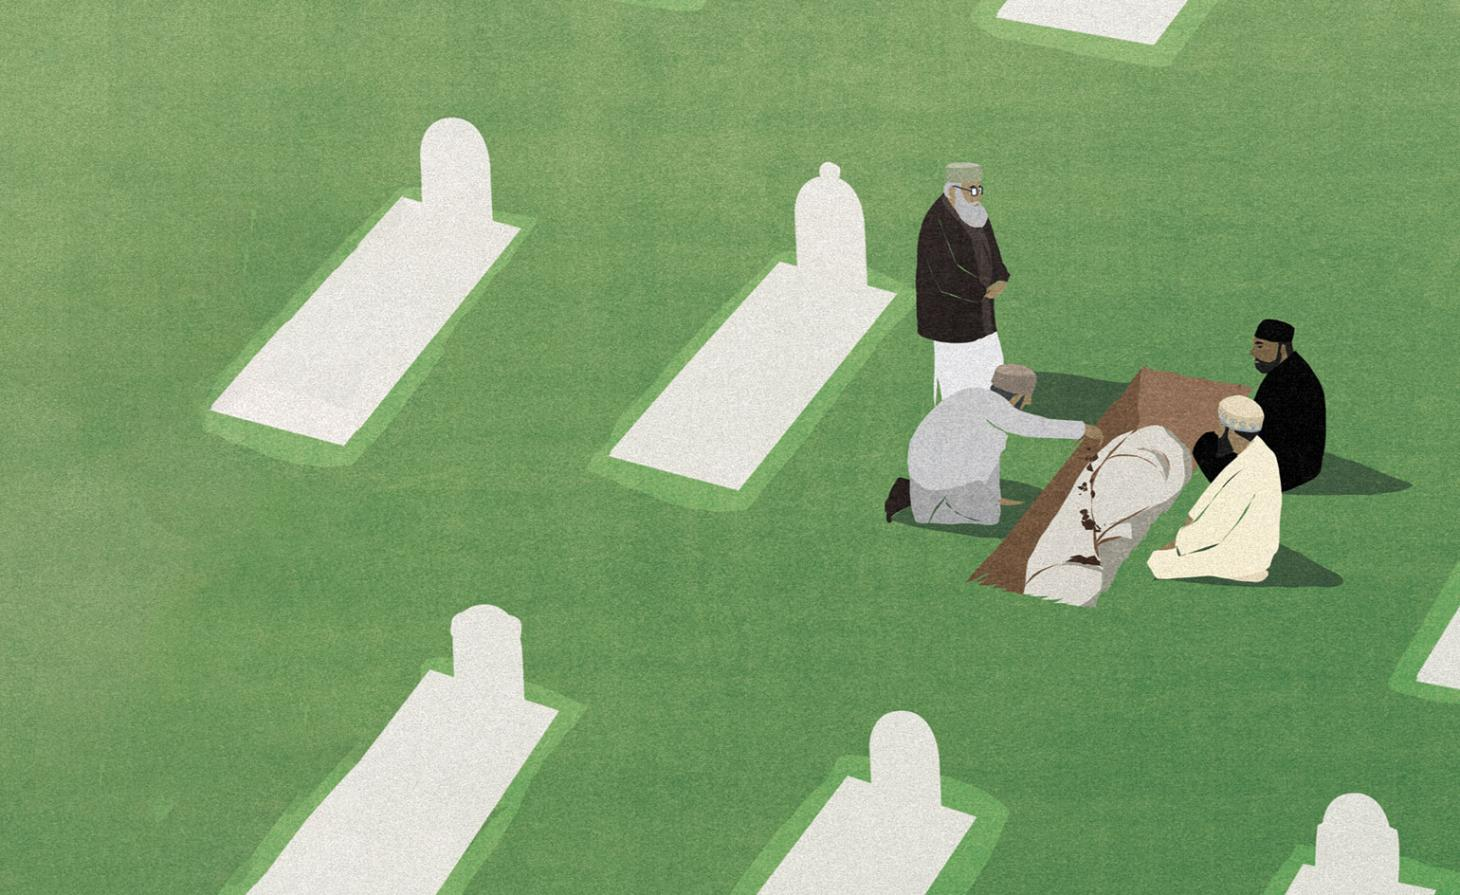 An illustration depicting a Muslim funeral from the book How to Die Well